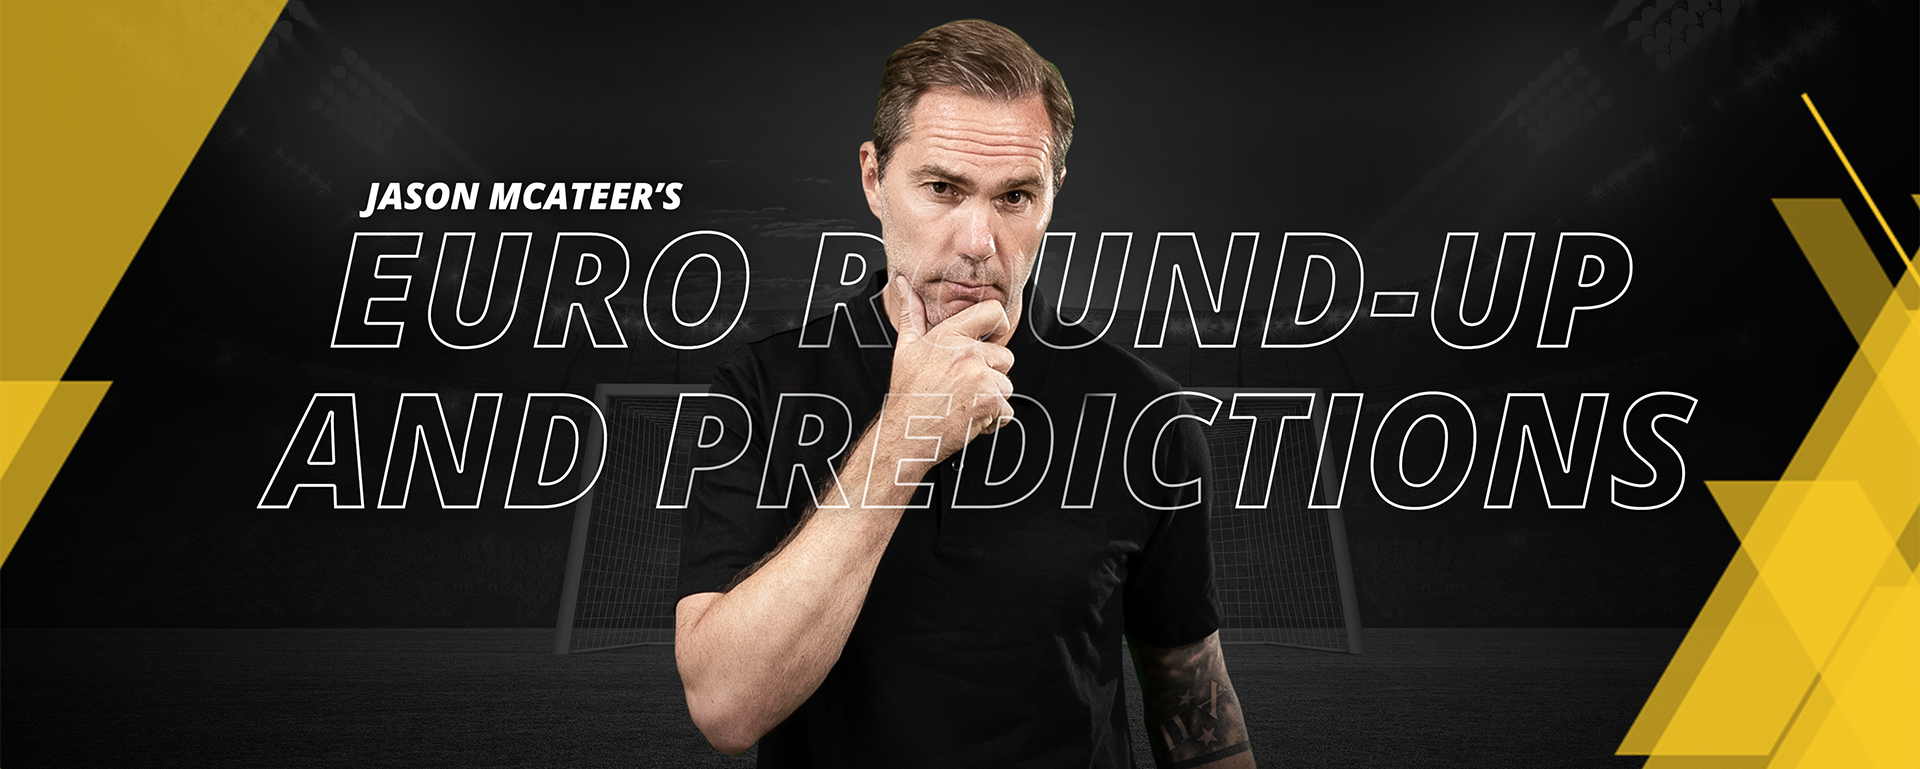 JASON MCATEER'S EURO ROUND-UP AND PREDICTIONS